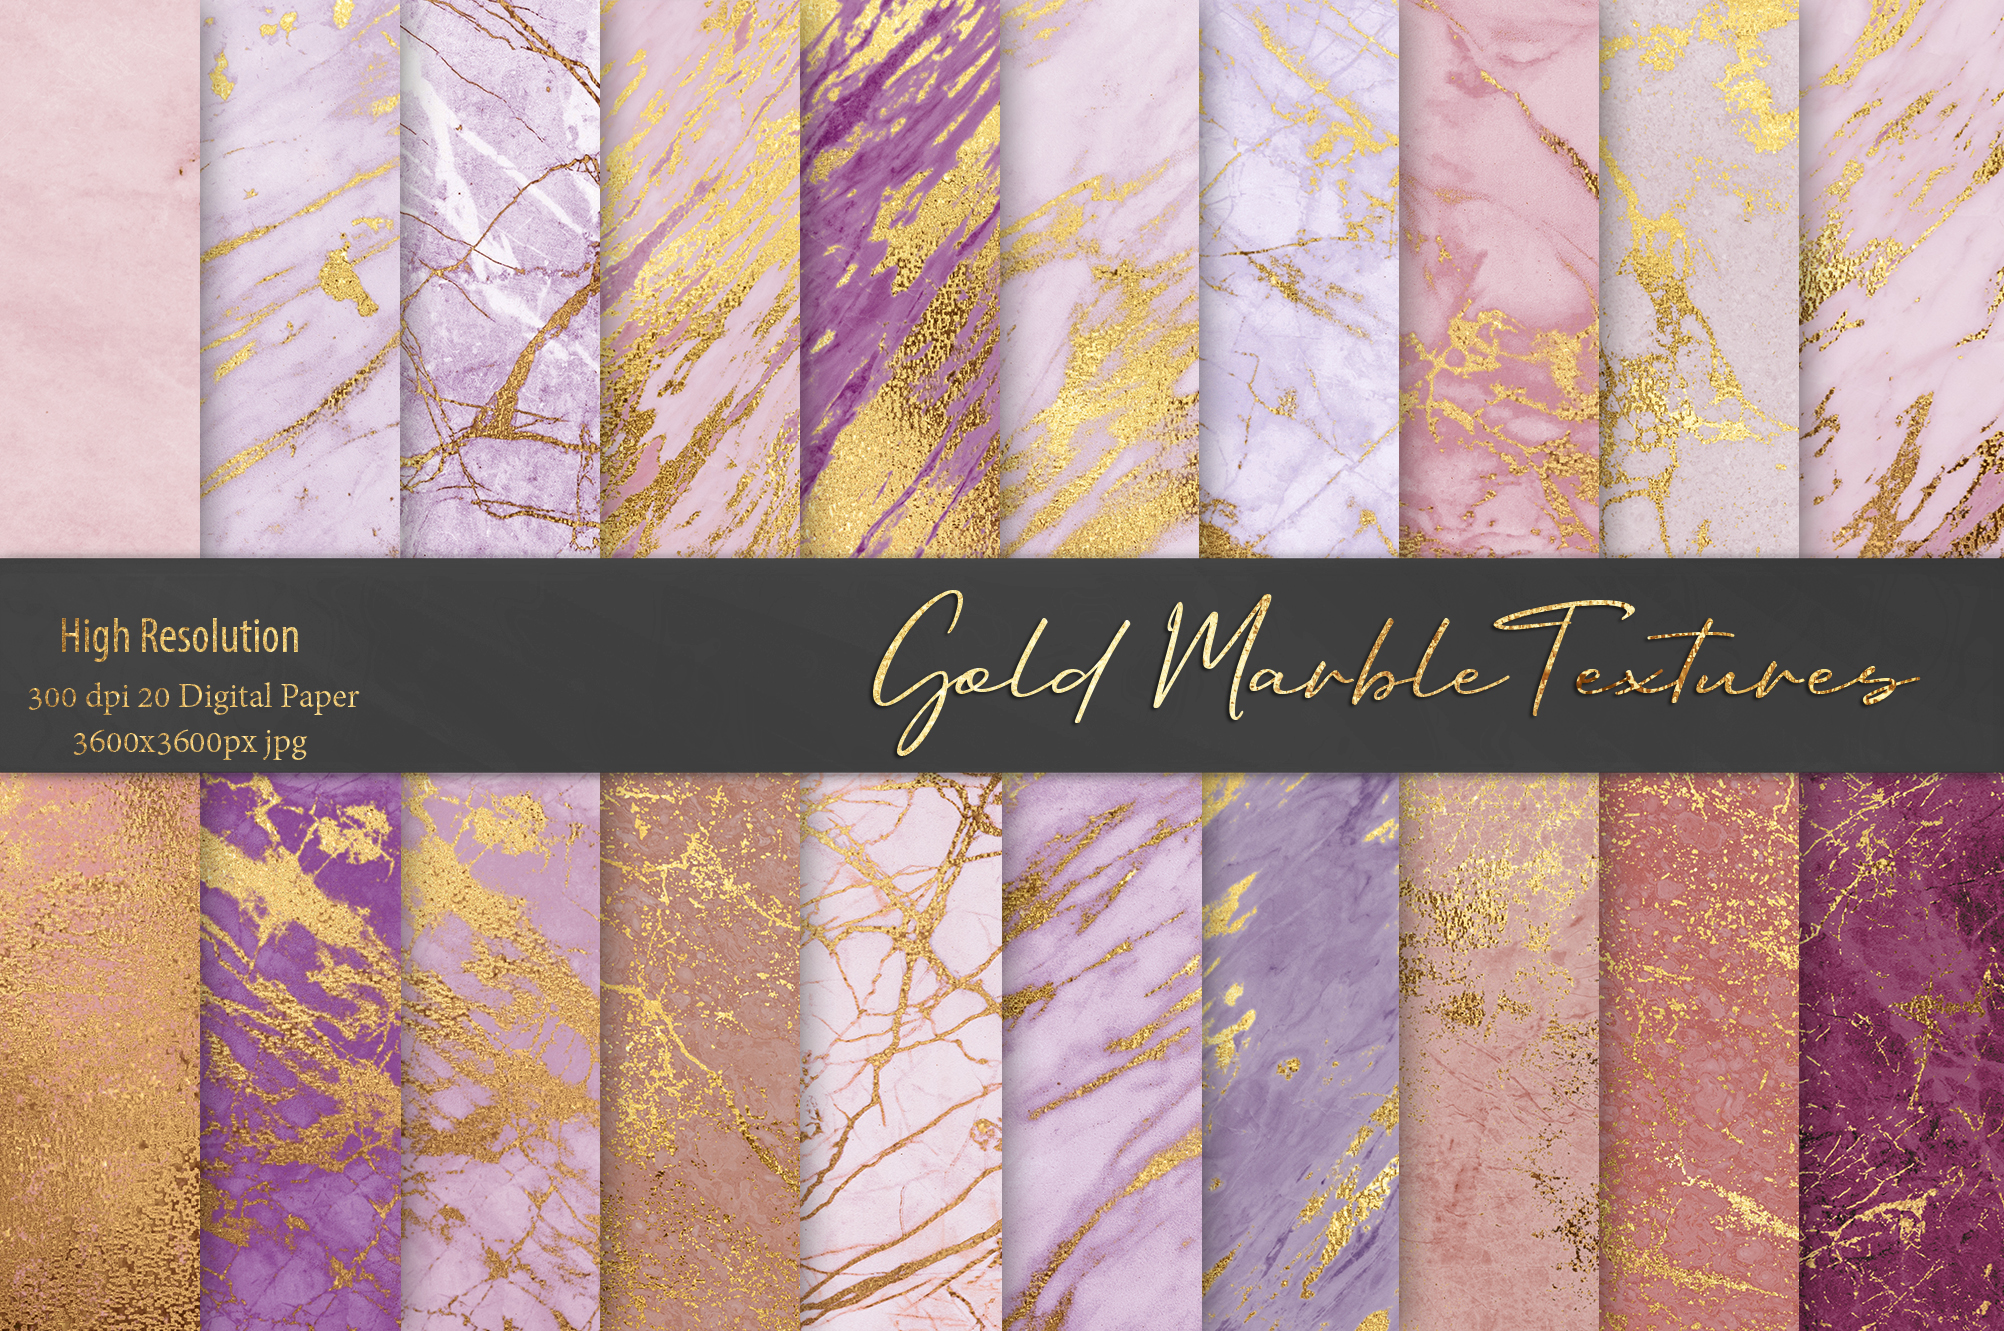 Rose Gold Marble Textures example image 1